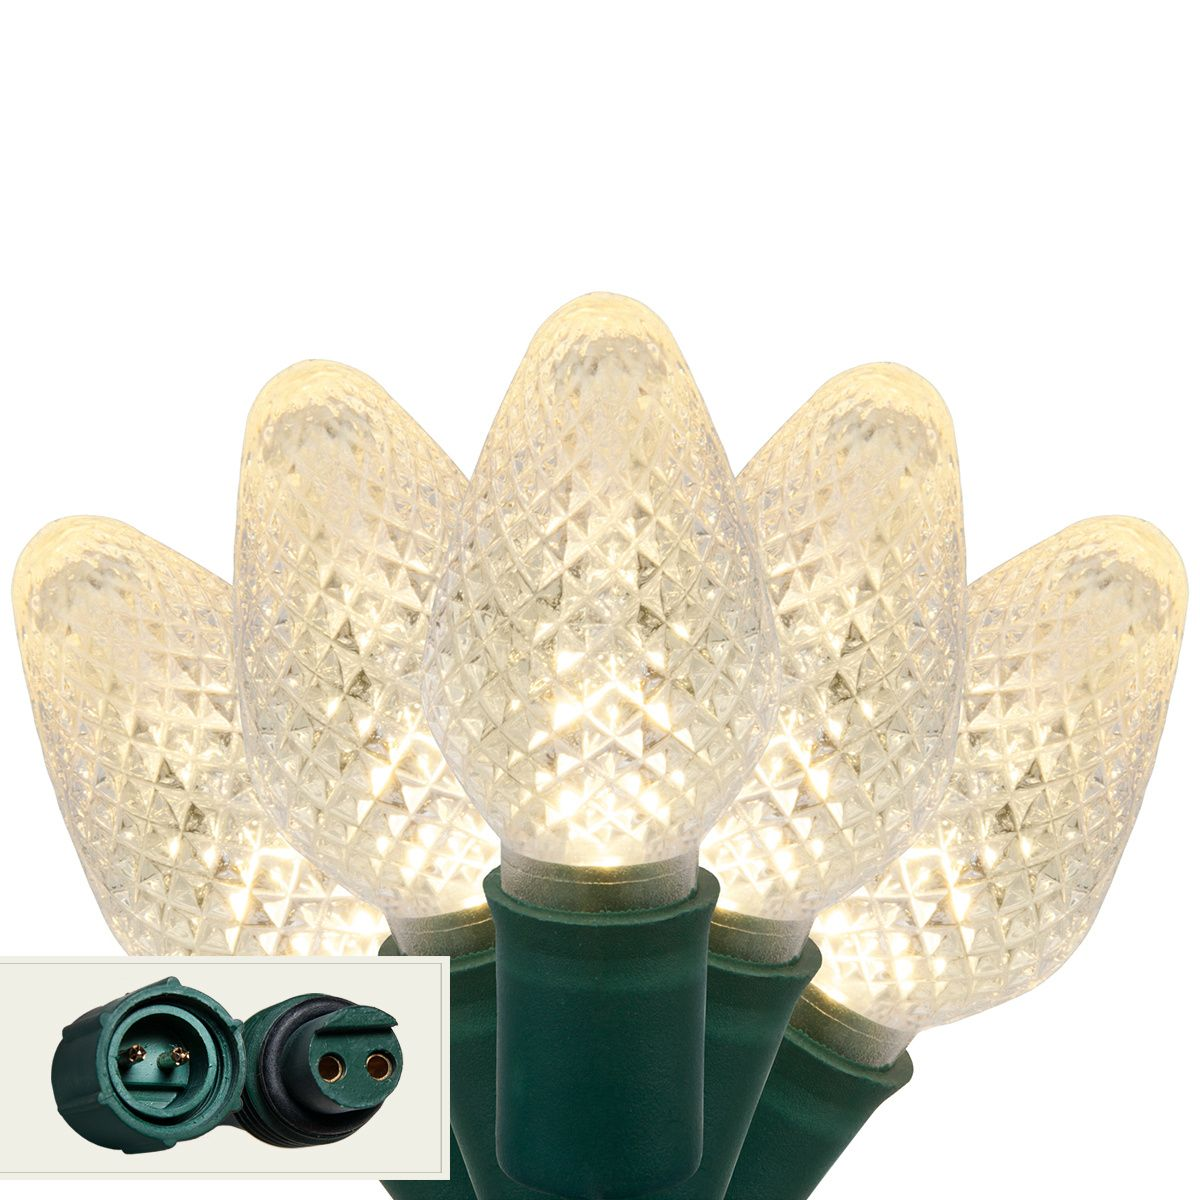 Commercial 25 C7 Warm White LED Christmas Lights, 6